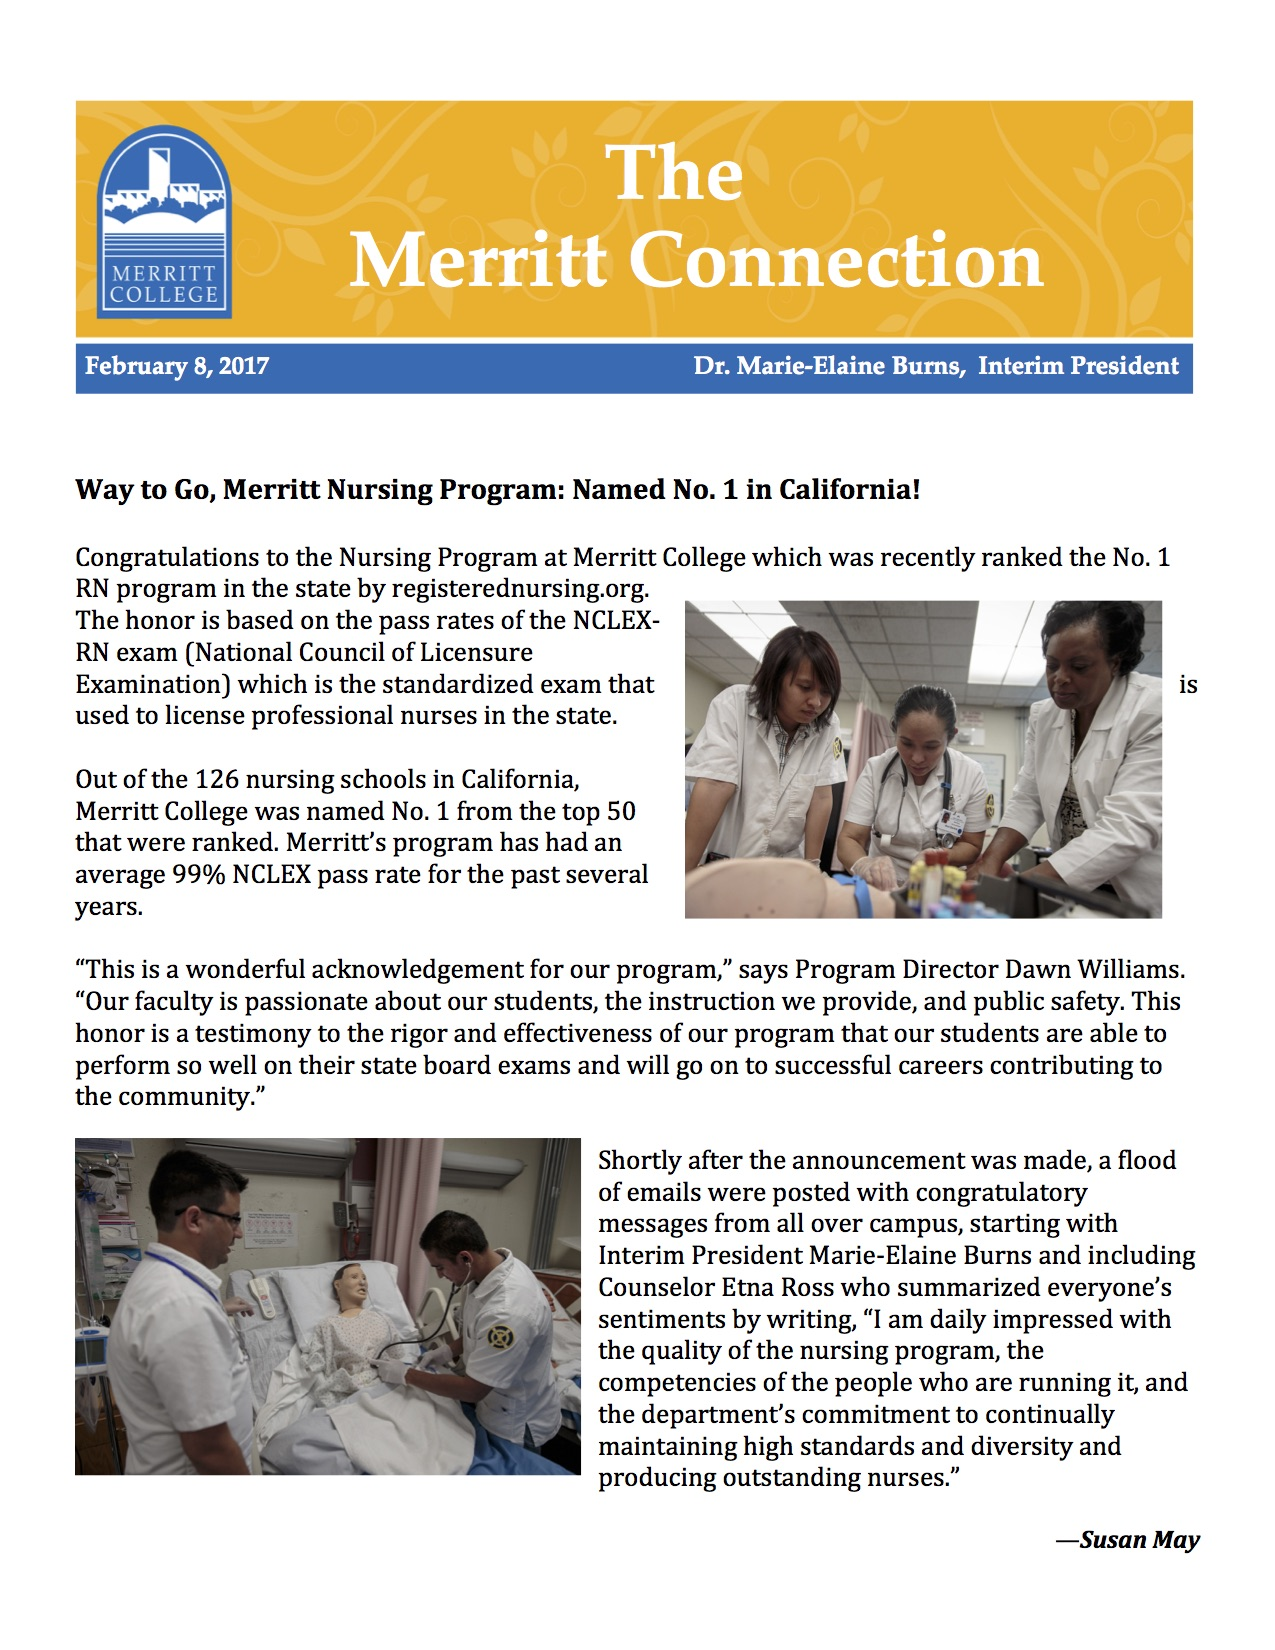 Merritt College Nursing